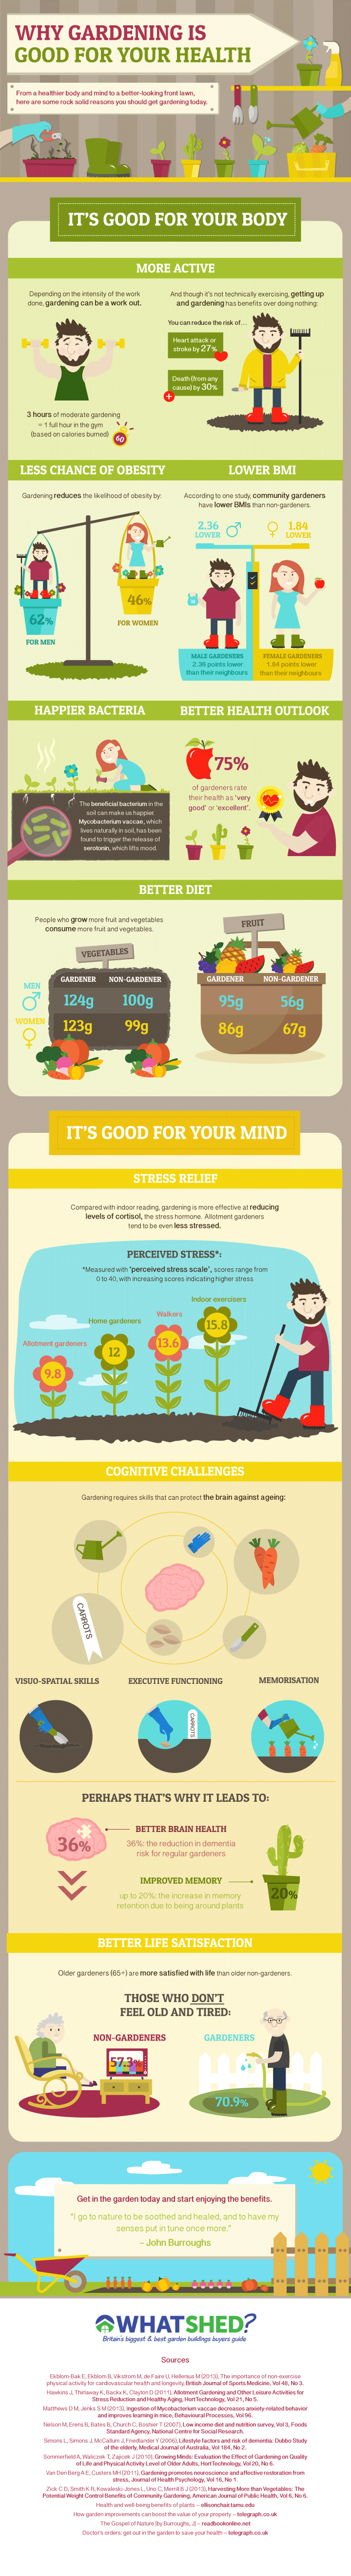 Health Benefits Of Gardening - Infographic